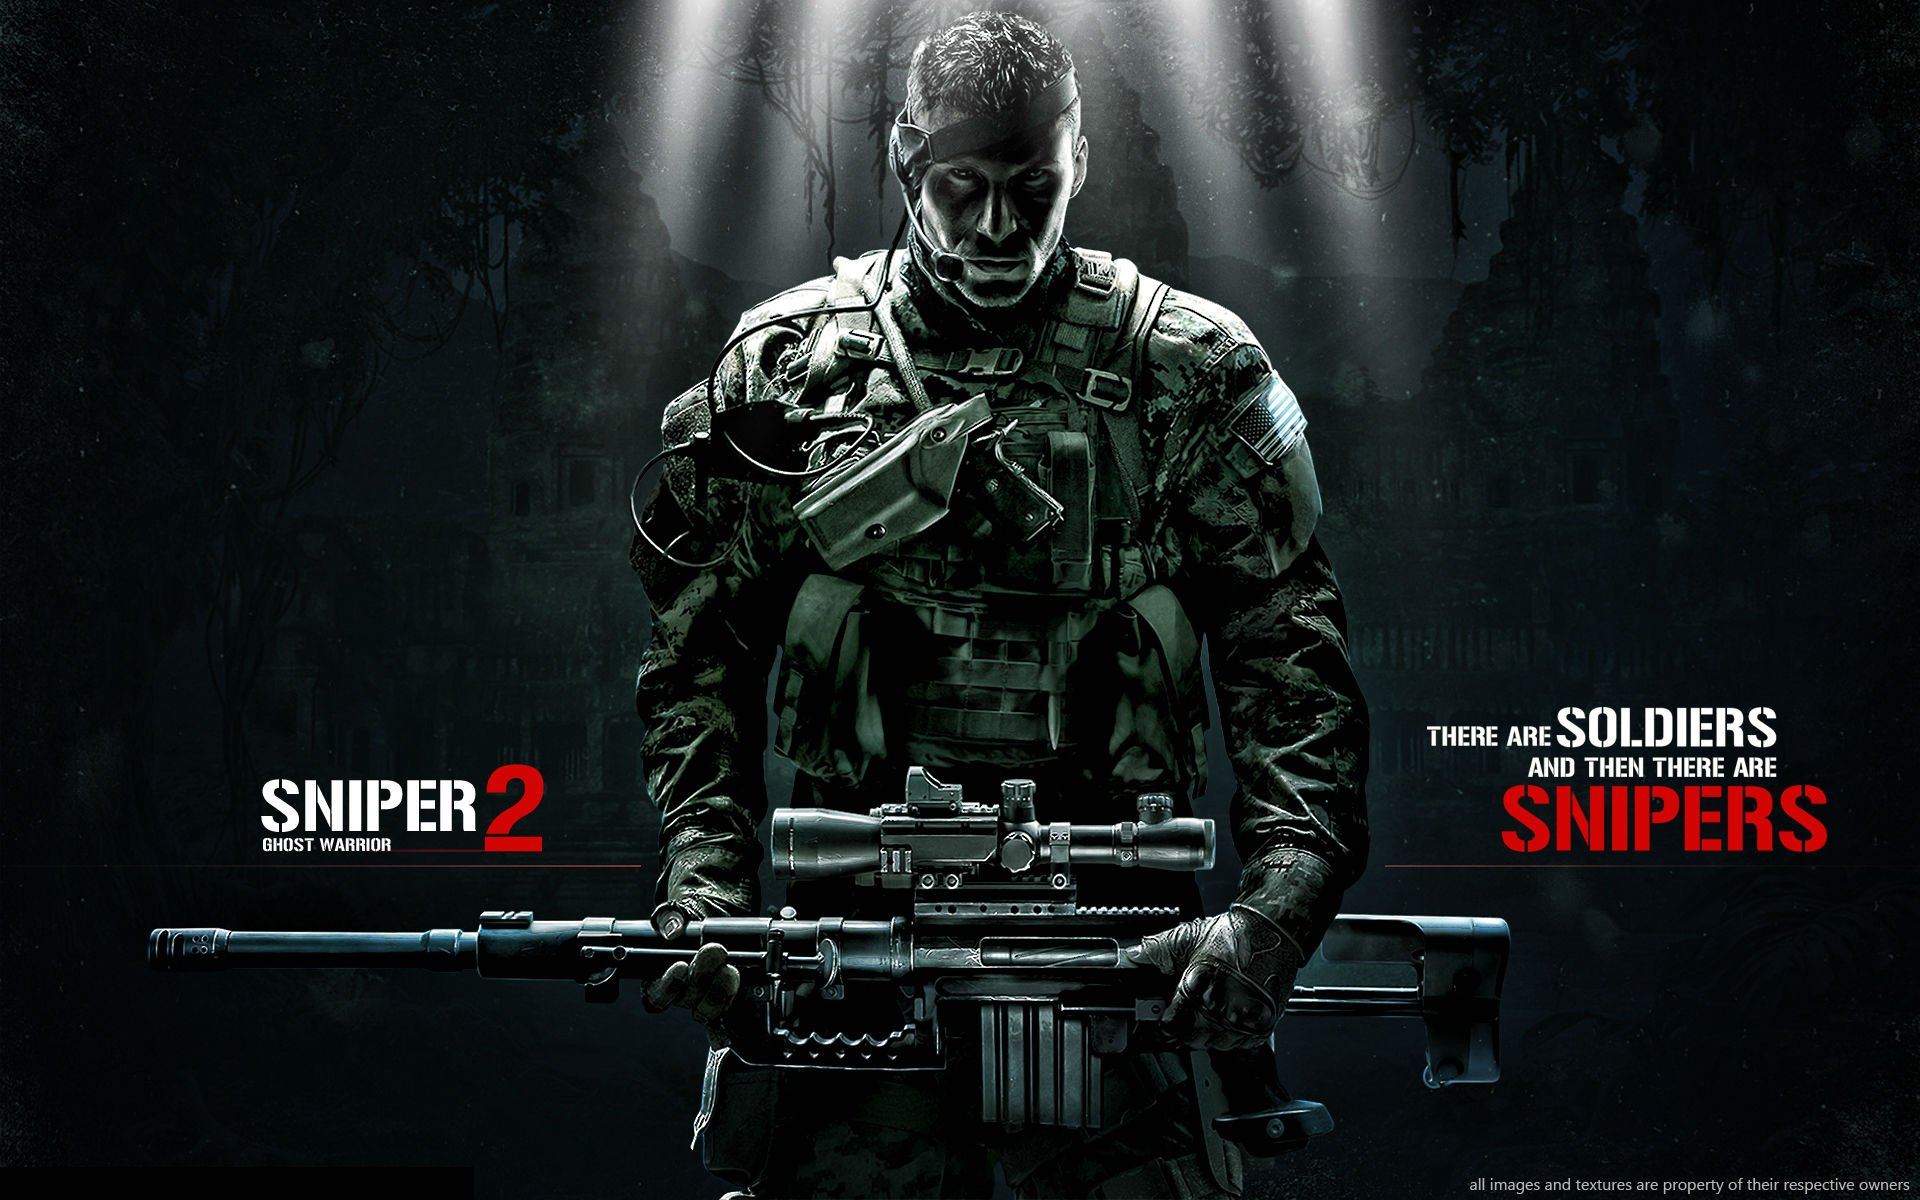 sniper ghost warrior military shooter stealth action fighting 1sgw